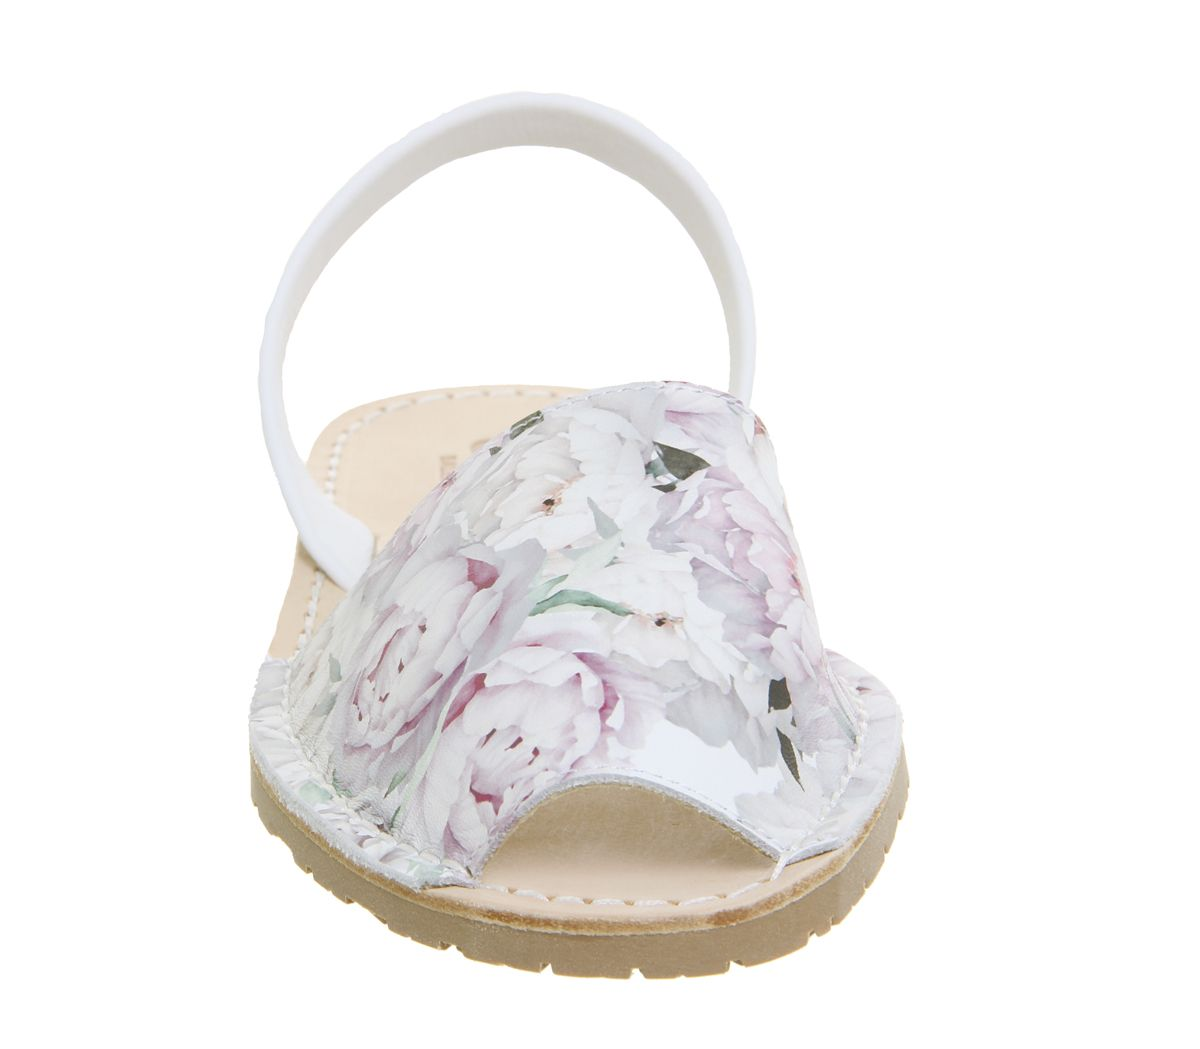 Womens-Solillas-Solillas-Sandals-Floral-Print-Sandals thumbnail 10